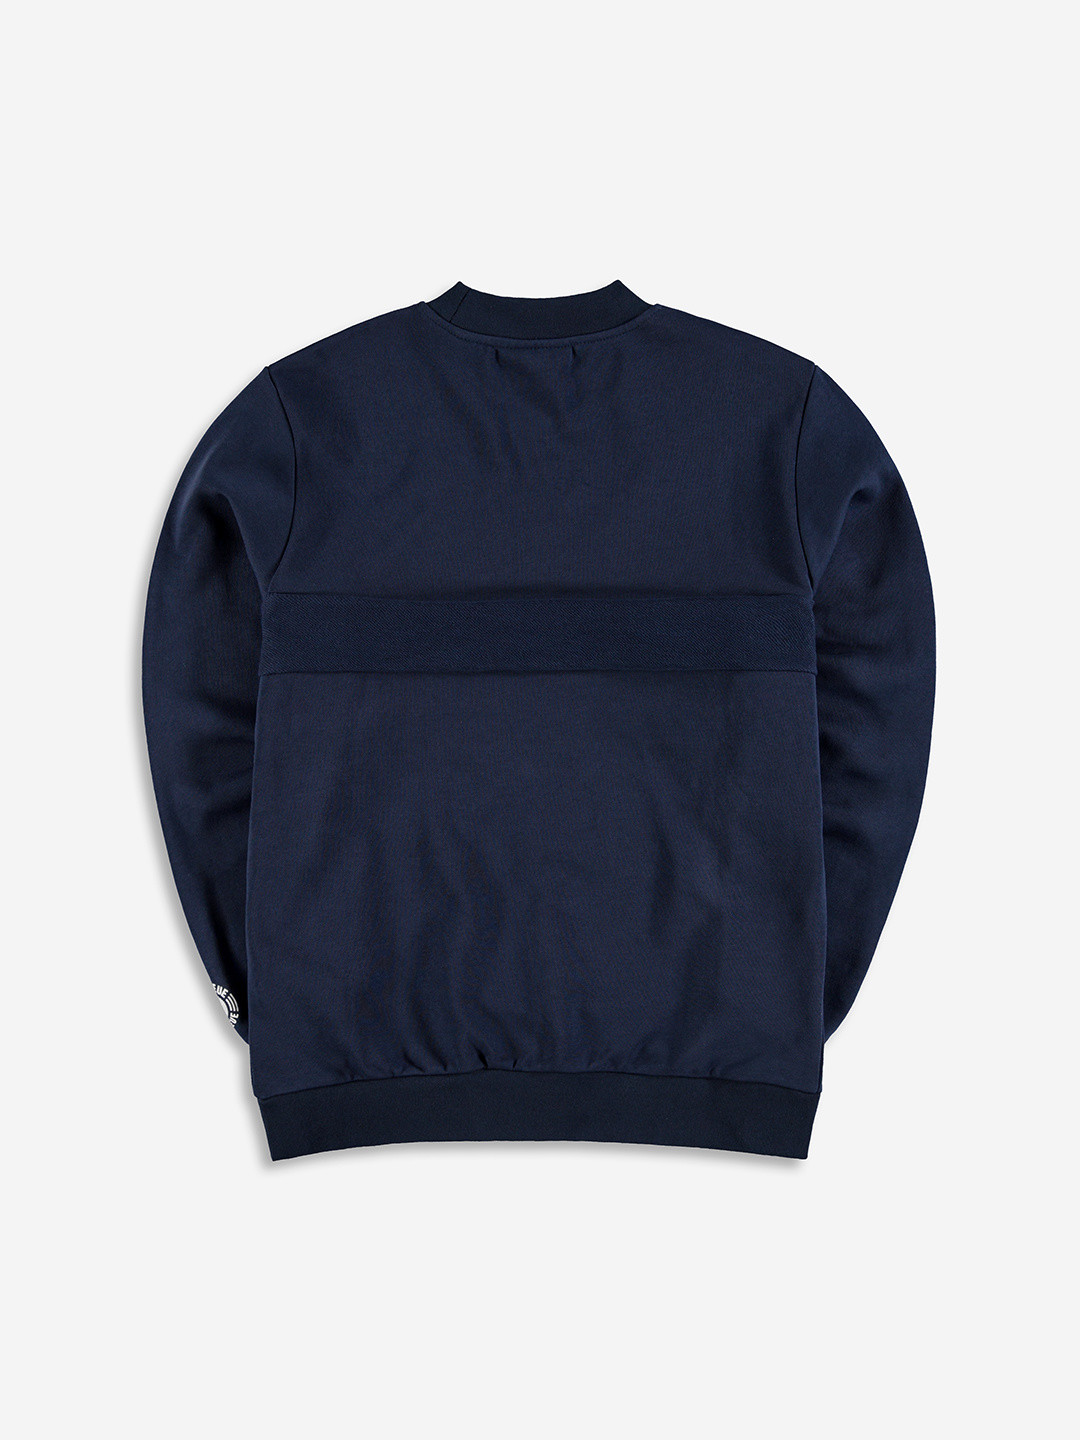 SPLIT FABRIC SWEATER NAVY